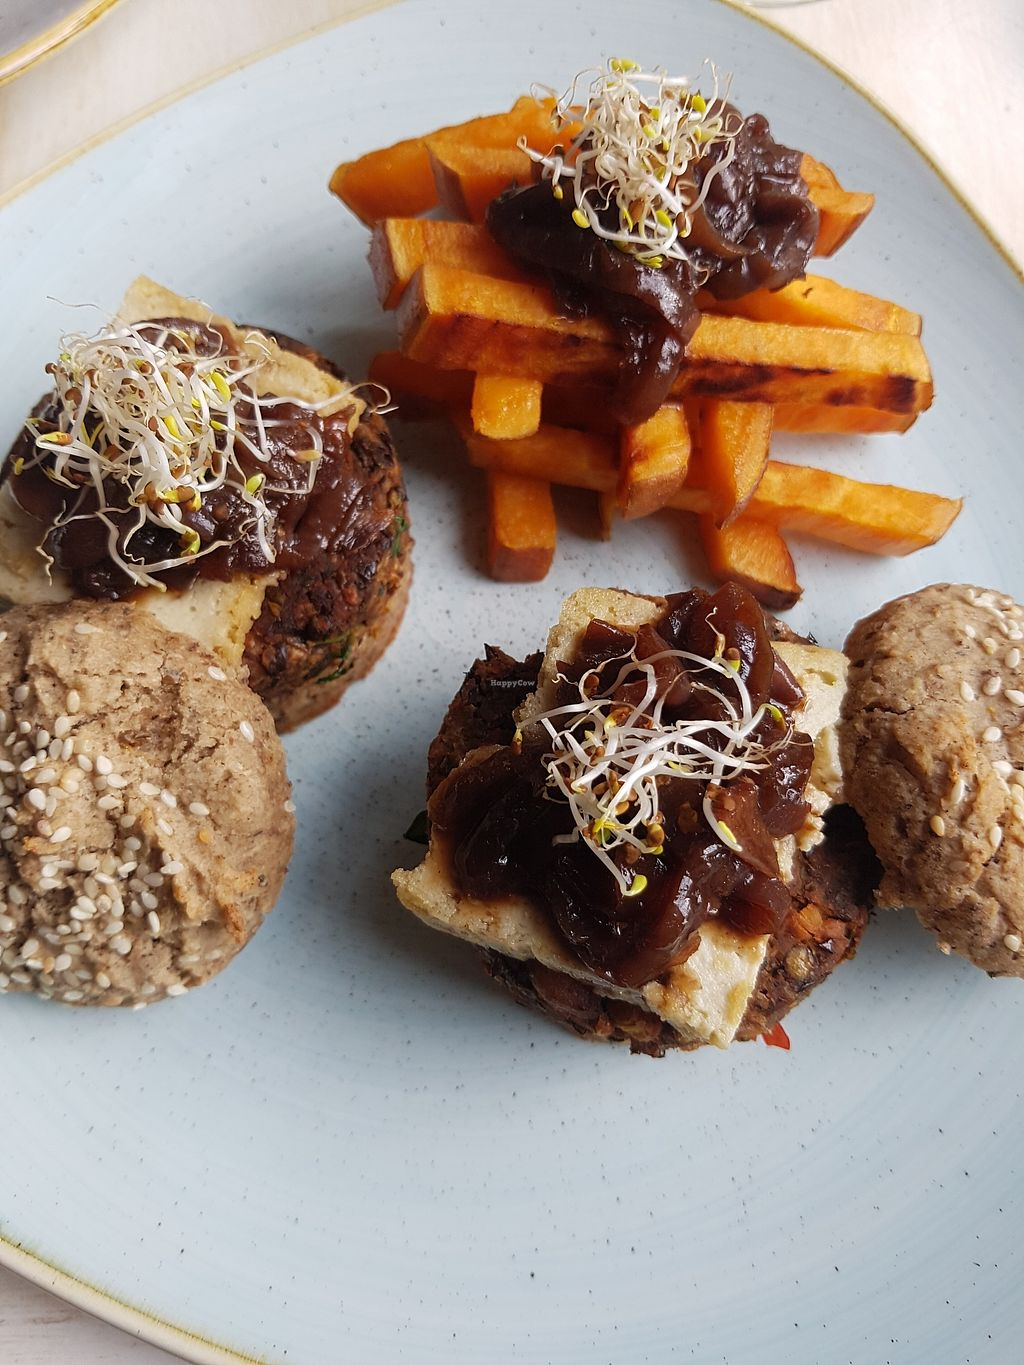 """Photo of Glow  by <a href=""""/members/profile/estefinparis"""">estefinparis</a> <br/>Veggie burger with homemade almond cheese and sweet potato  <br/> March 30, 2018  - <a href='/contact/abuse/image/107923/378313'>Report</a>"""